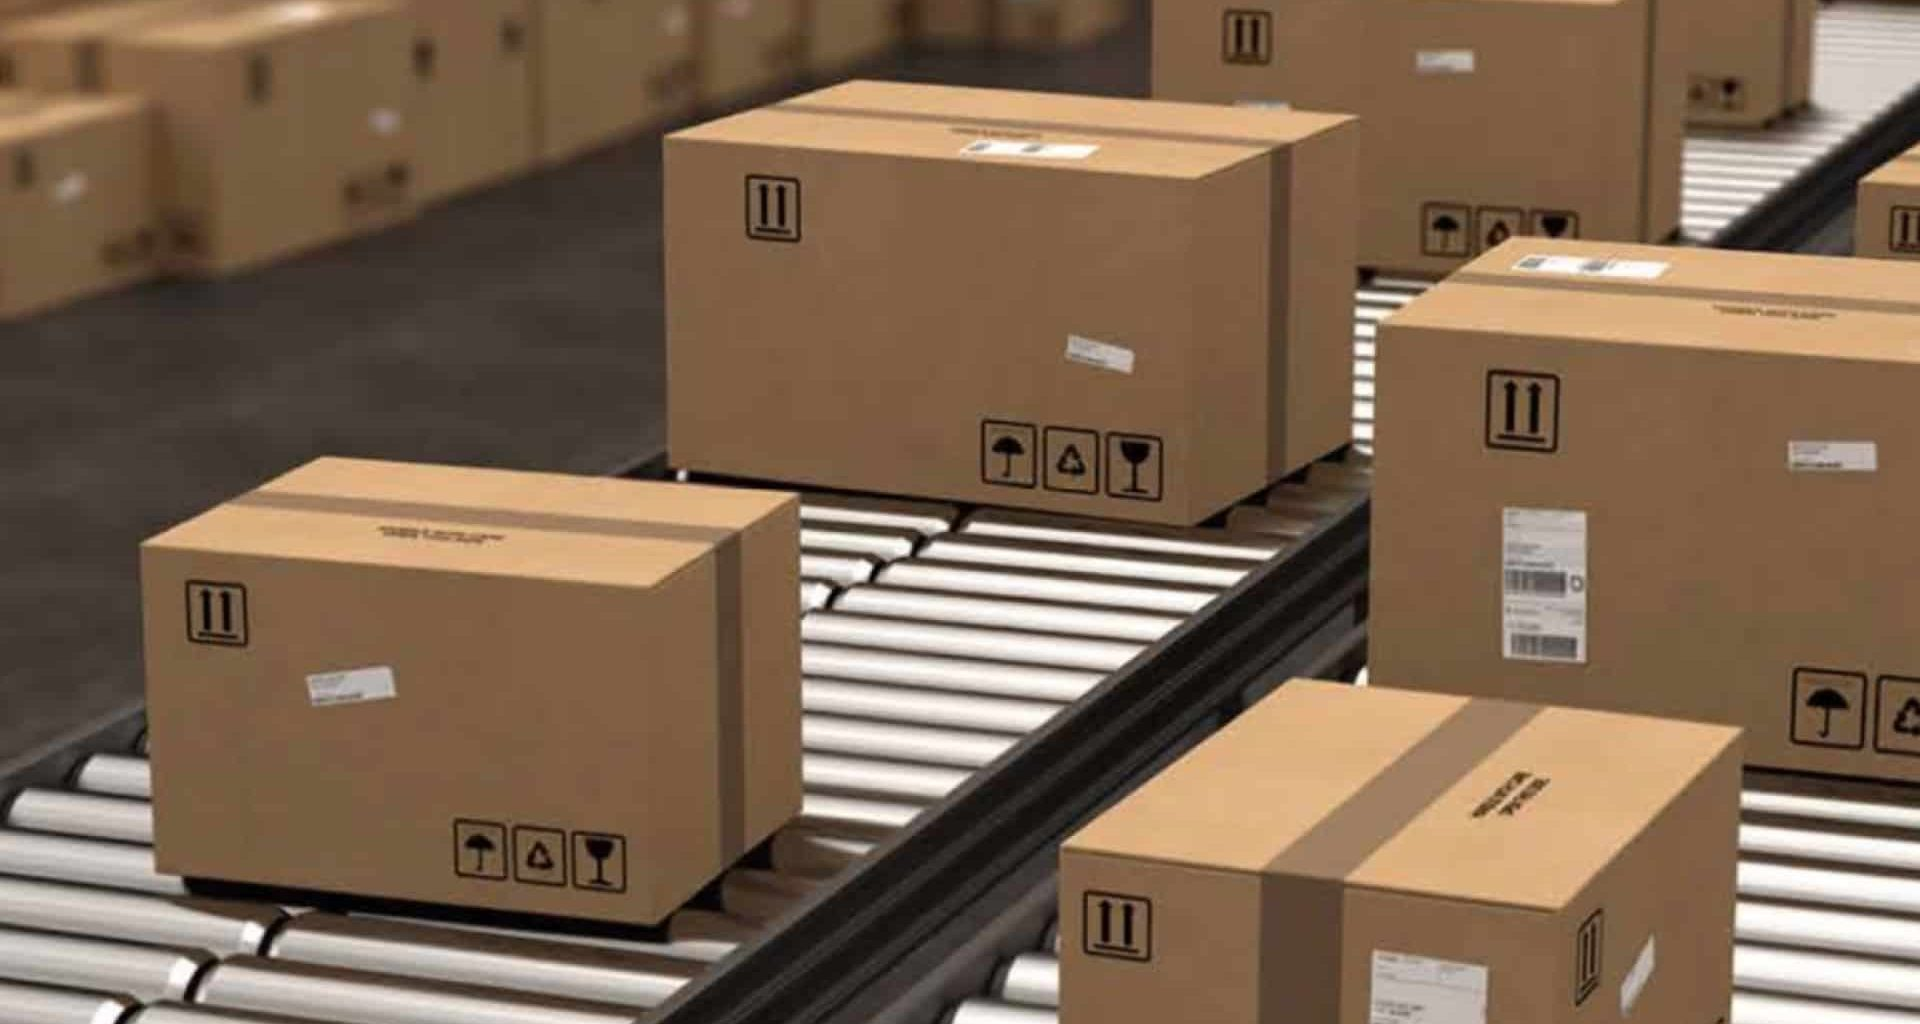 cardboard boxes on metals rollers in shipping facility